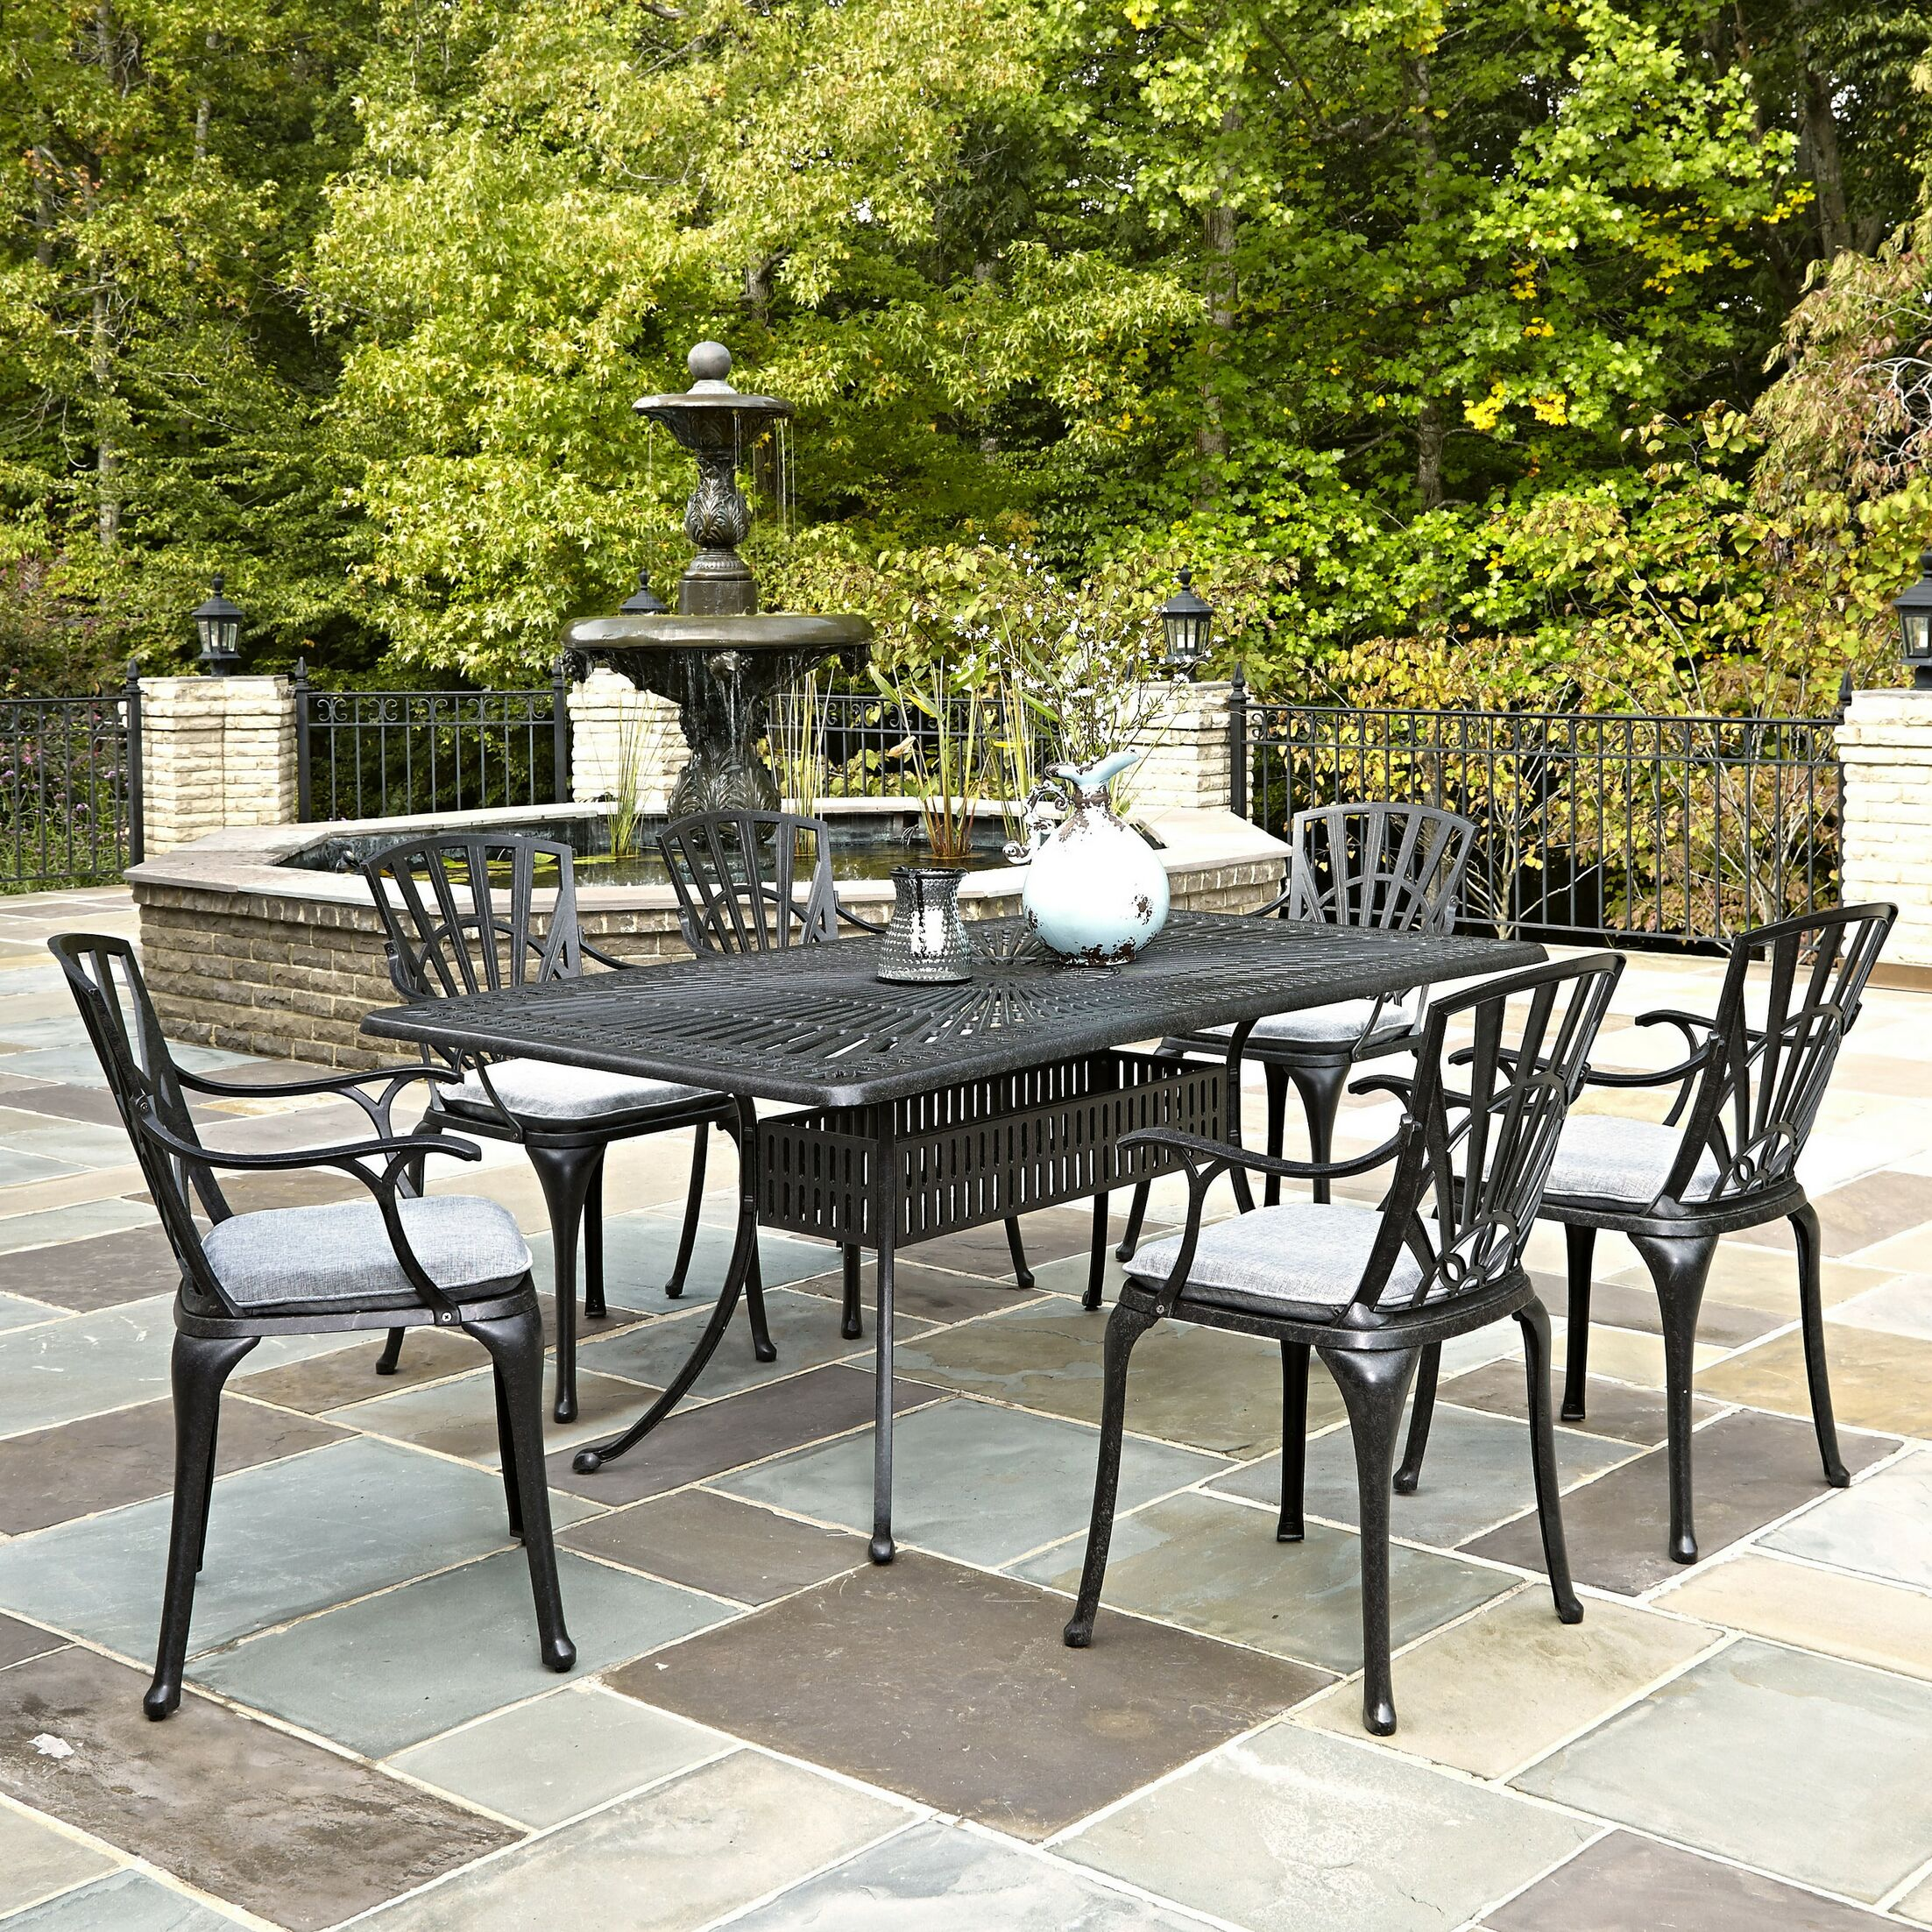 Frontenac 7 Piece Dining Set with Cushions